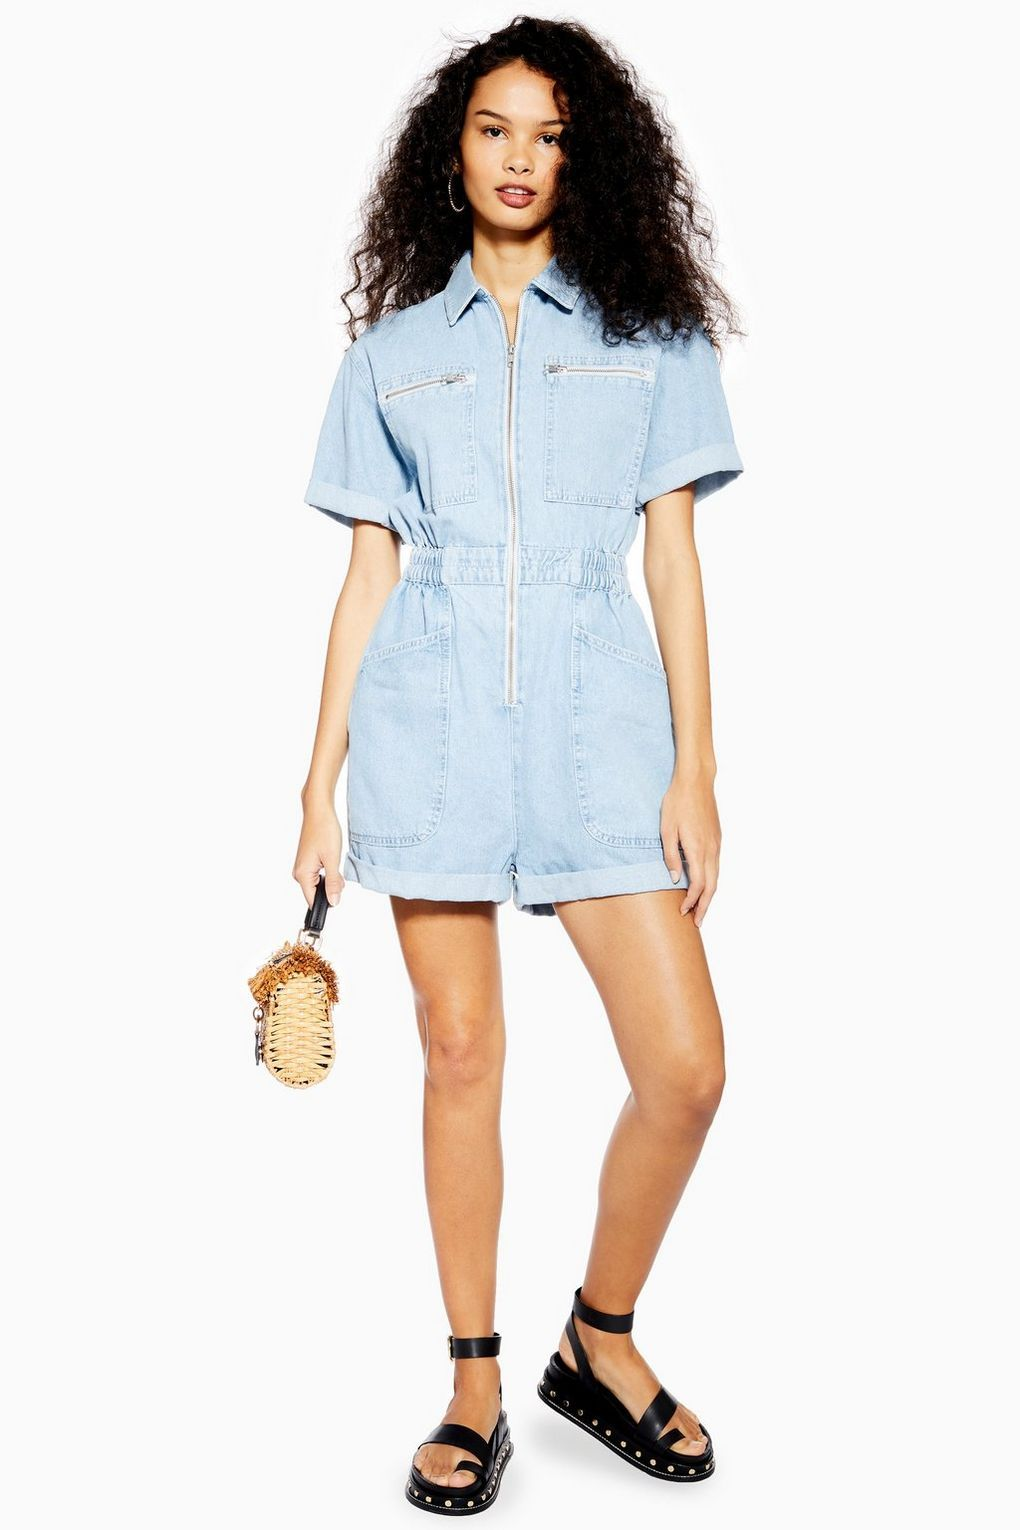 5e667f92445 38 Cute Summer Outfits for 2018 - What to Wear This Summer